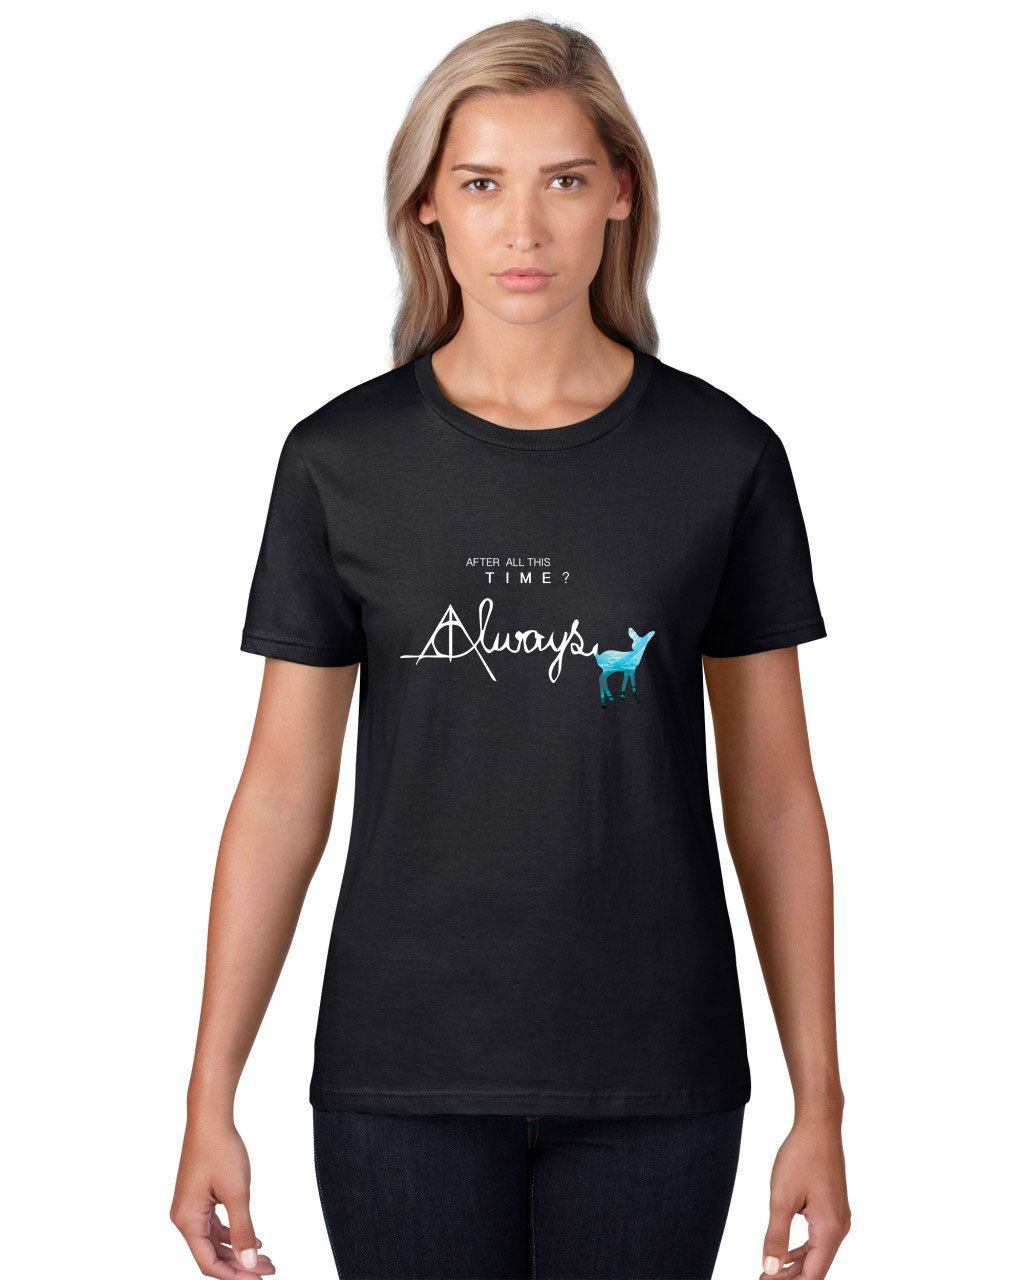 Black t shirt for ladies - Severus Snape Always Ladies T Shirt After All This Time Always Harry